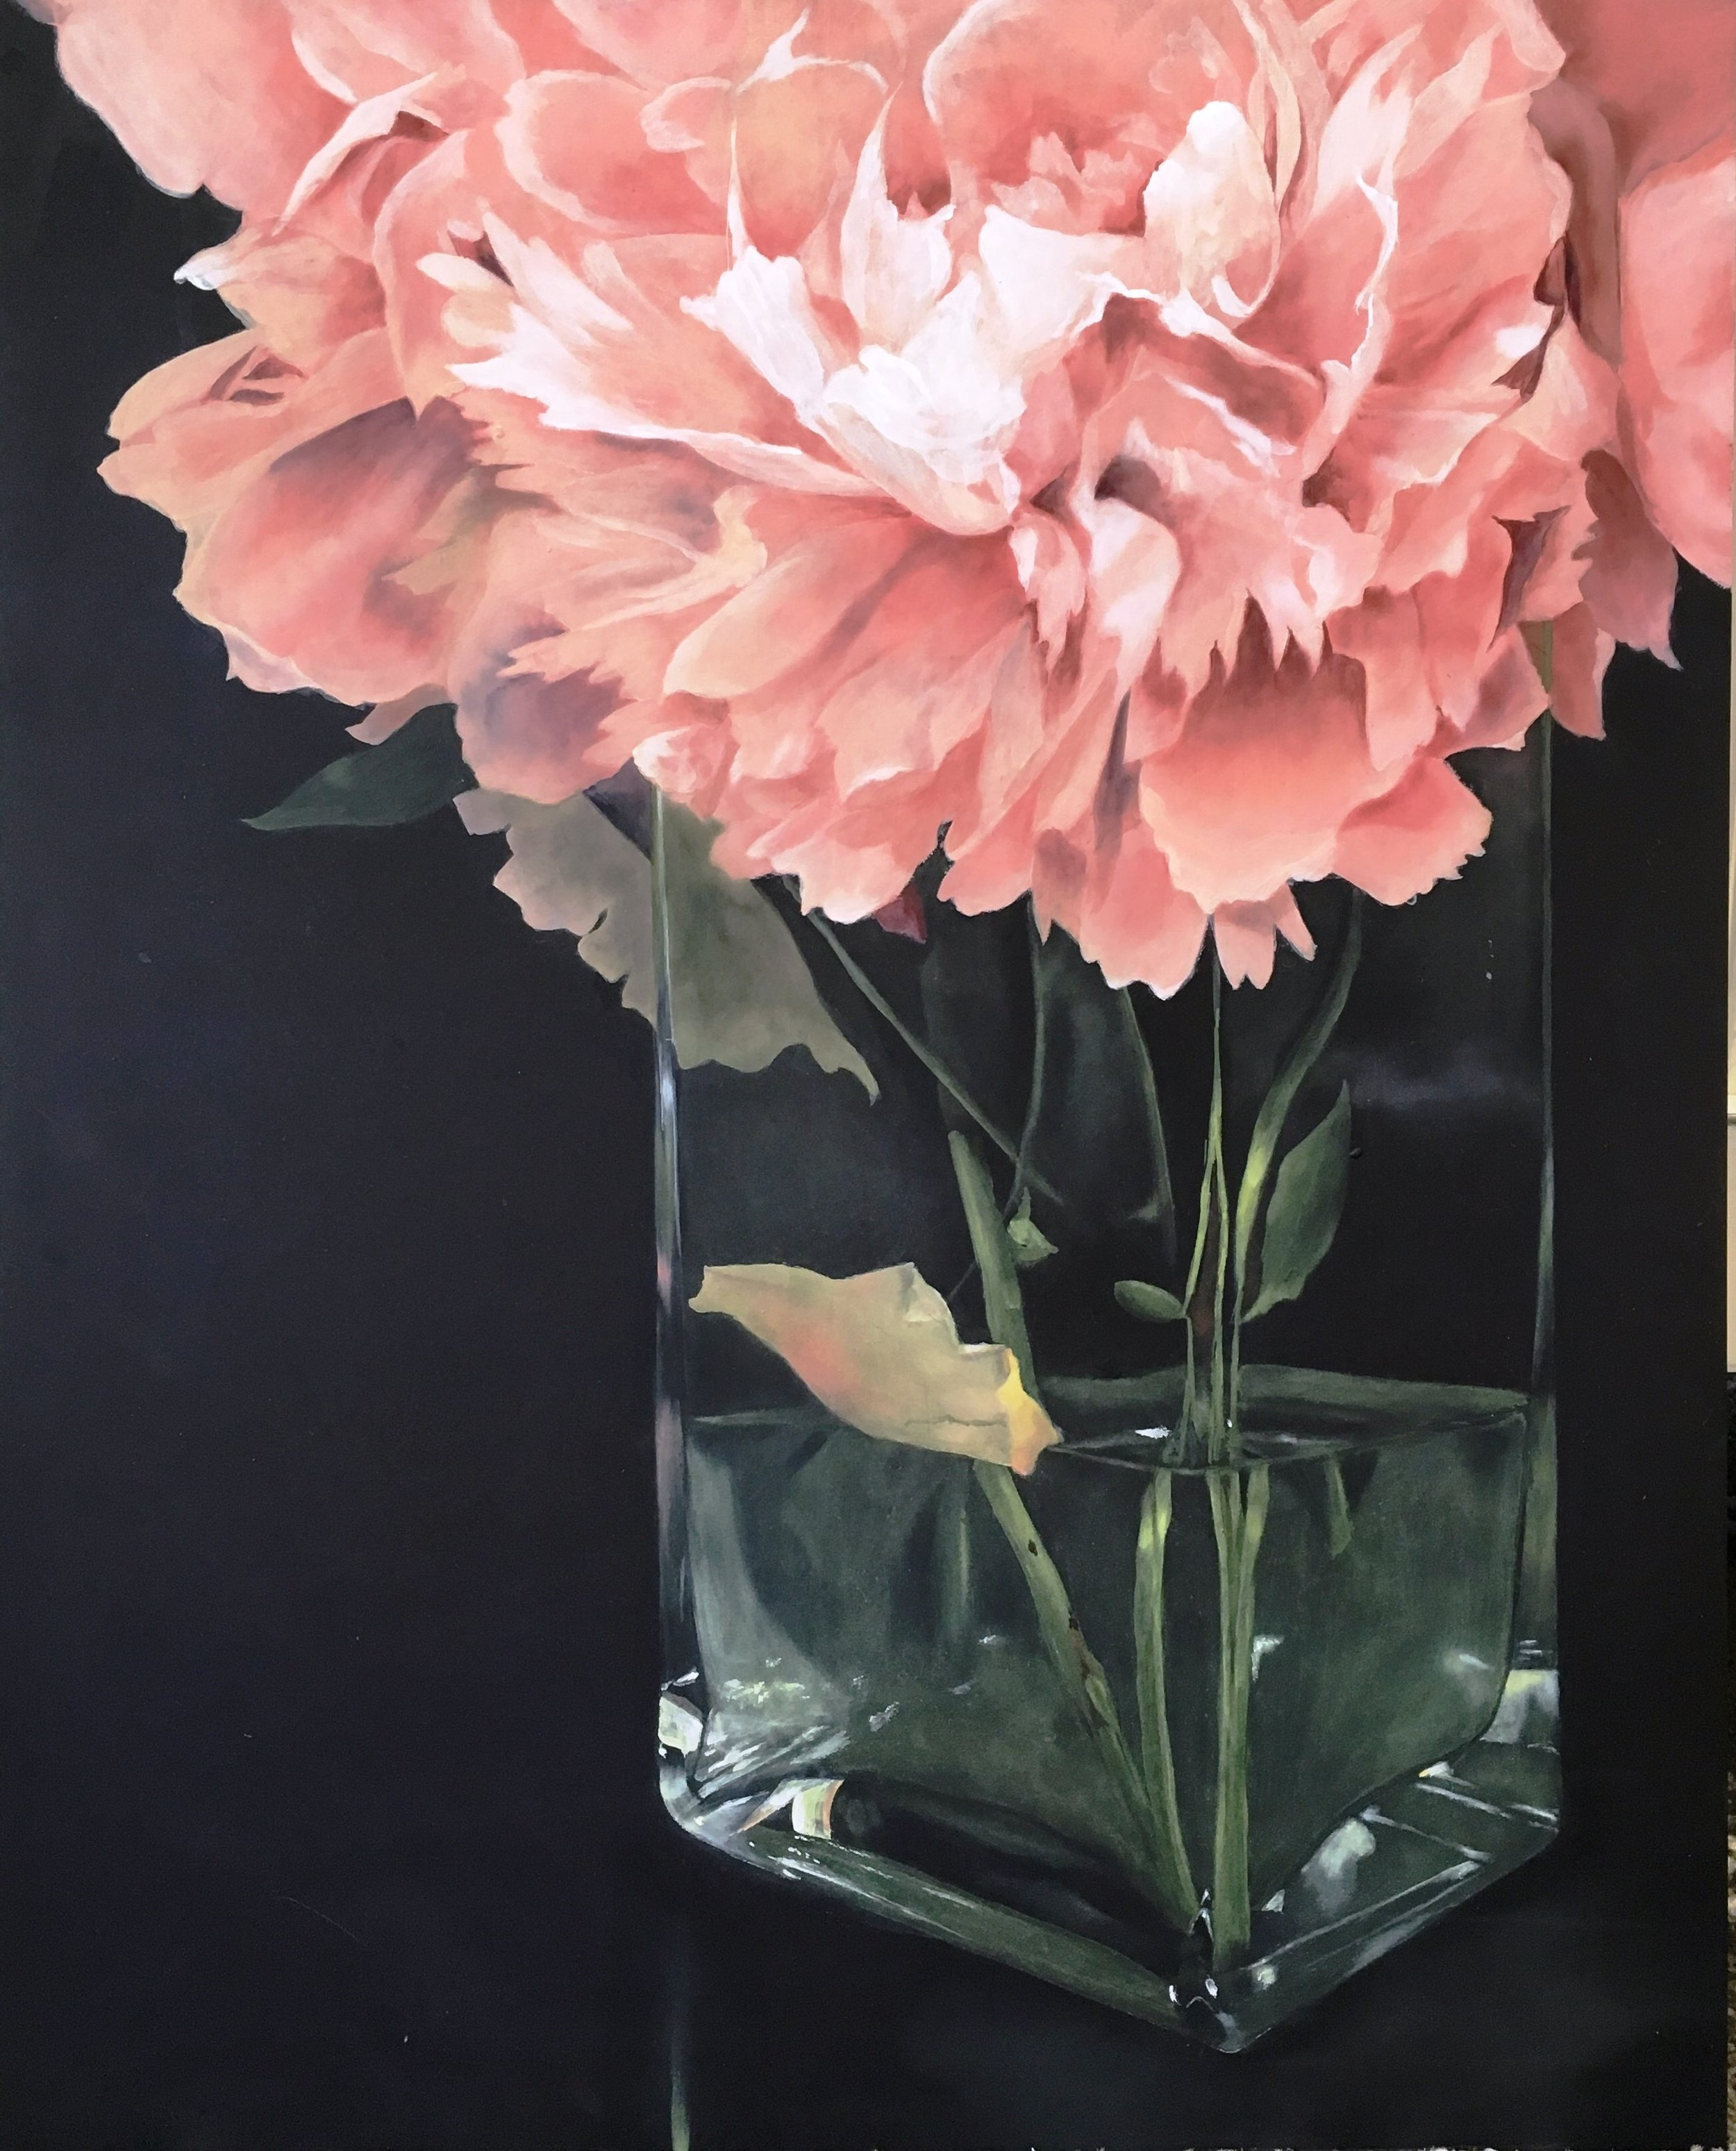 I painted this from peonies that i picked at a friend's house and brought home and put in a vase. For me, painting the glass vase was much more interesting than the flowers, haha.